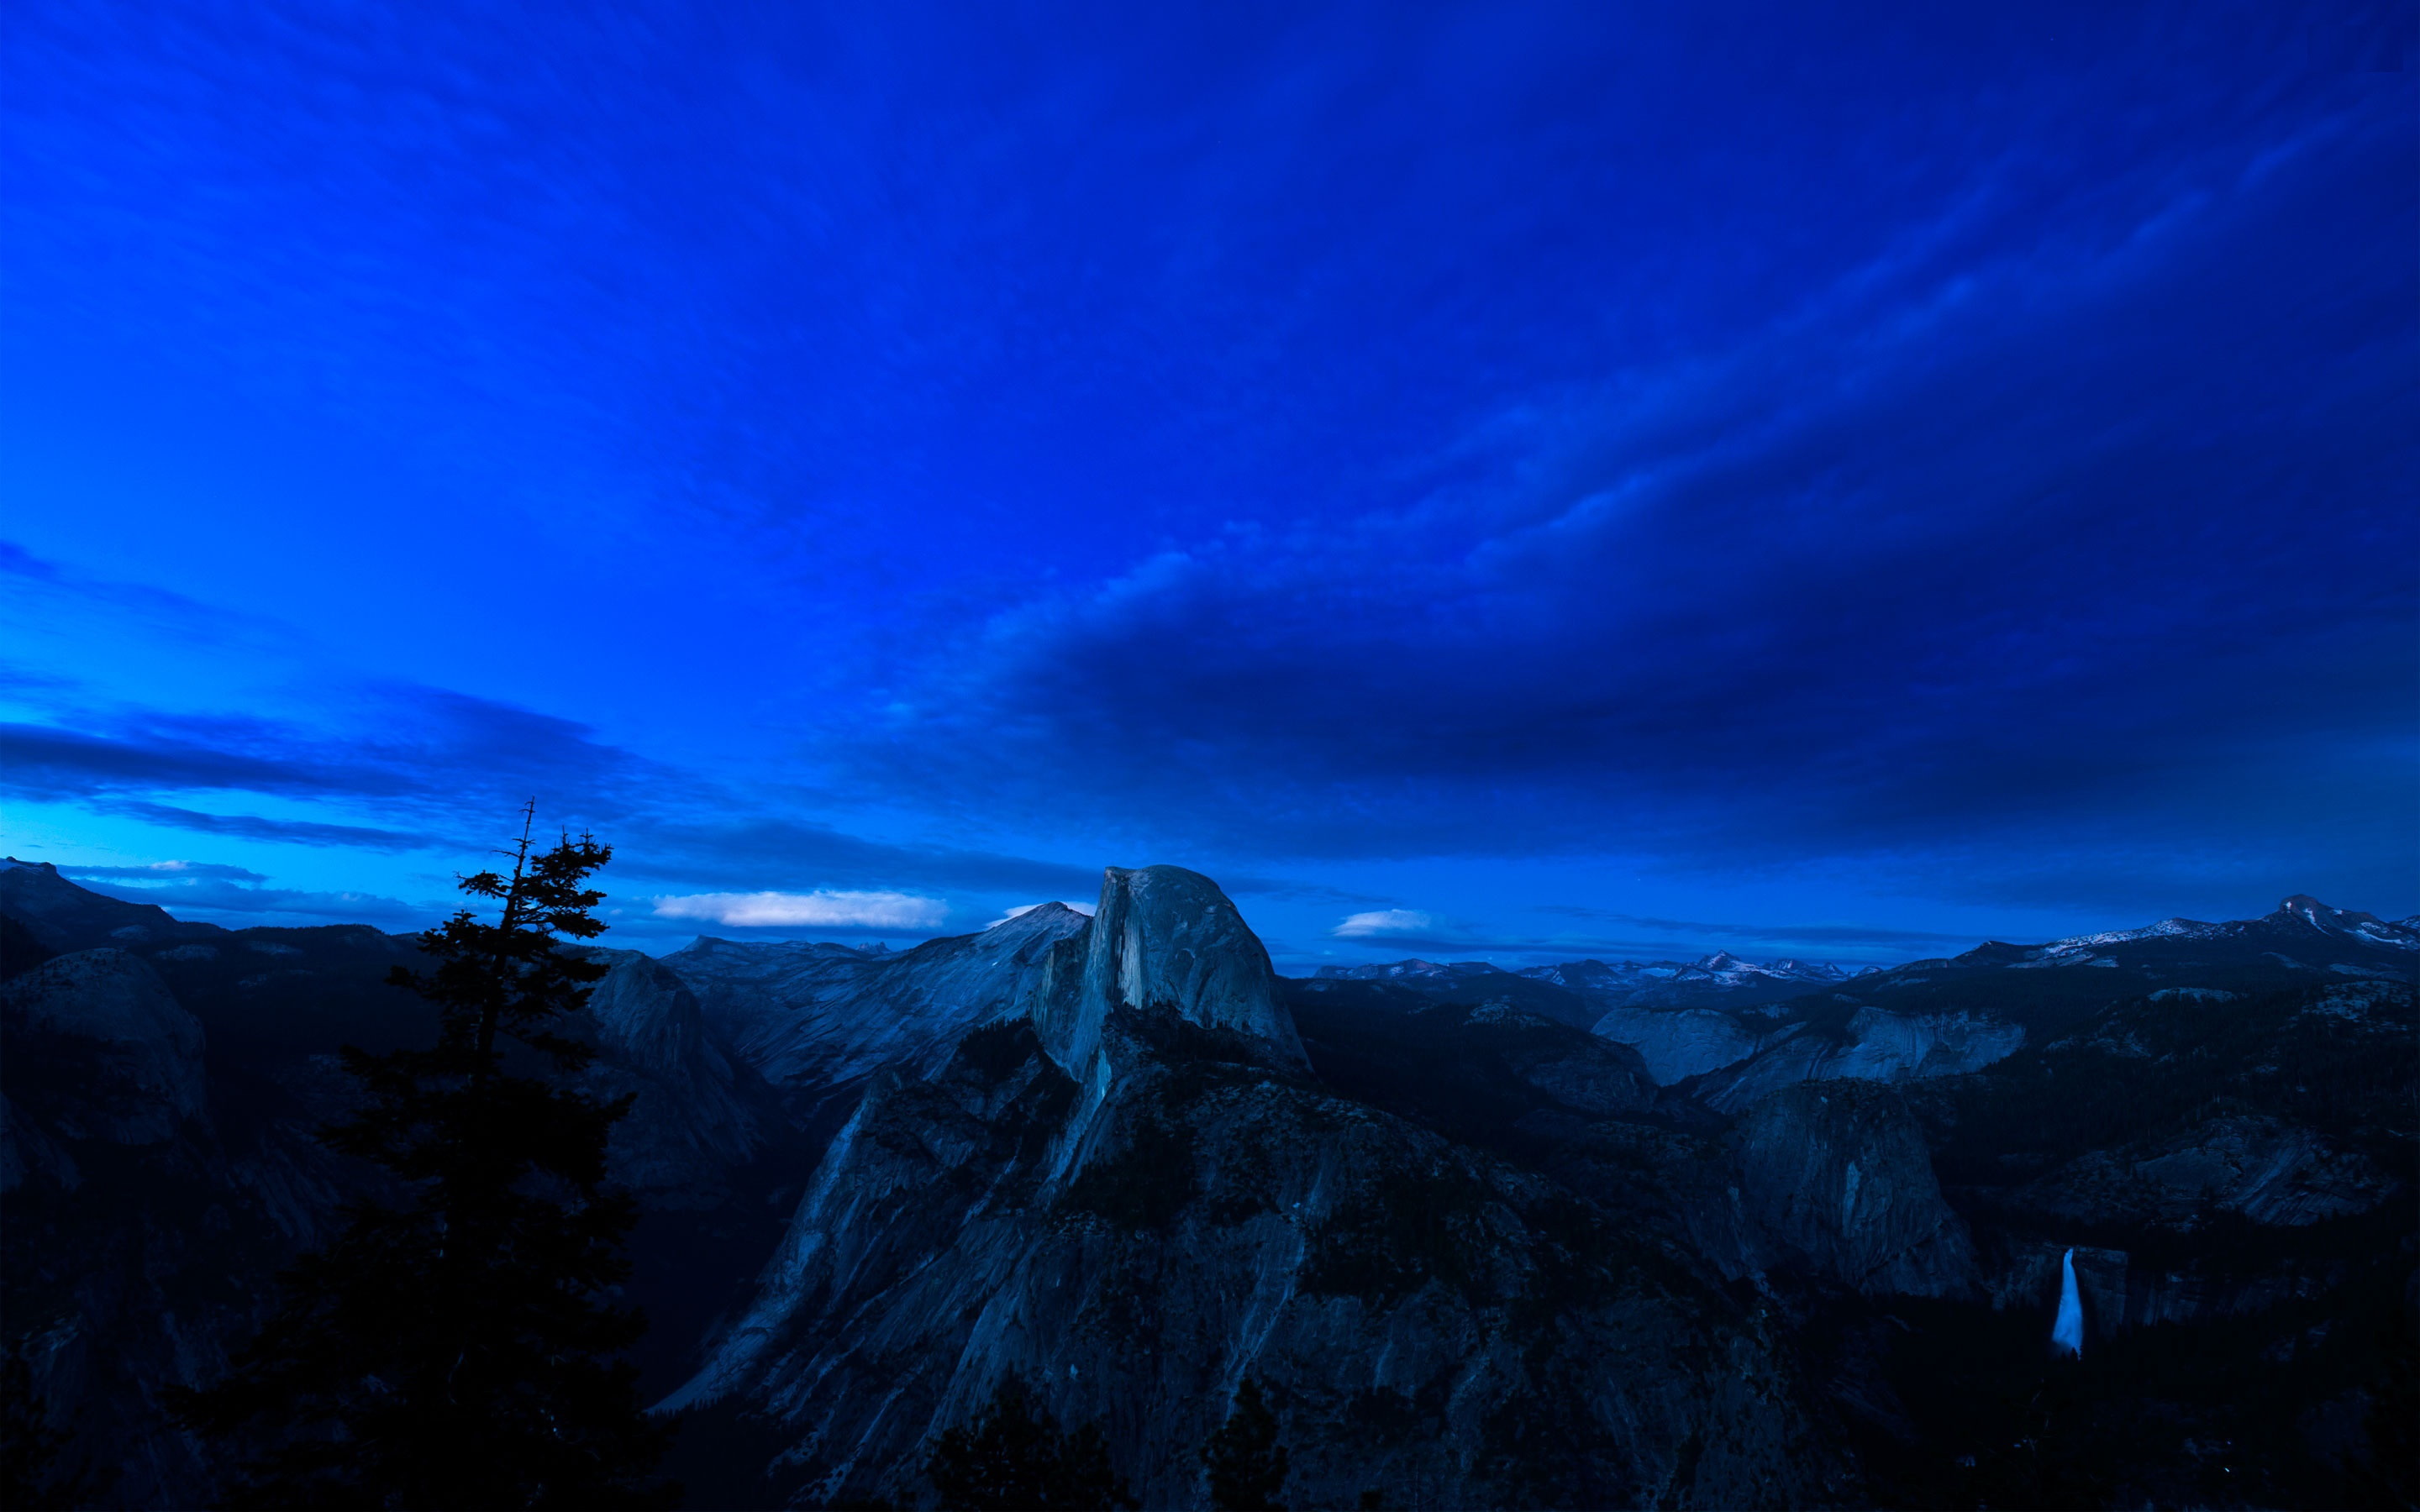 Yosemite National Park At Dusk Full HD Wallpaper And Background